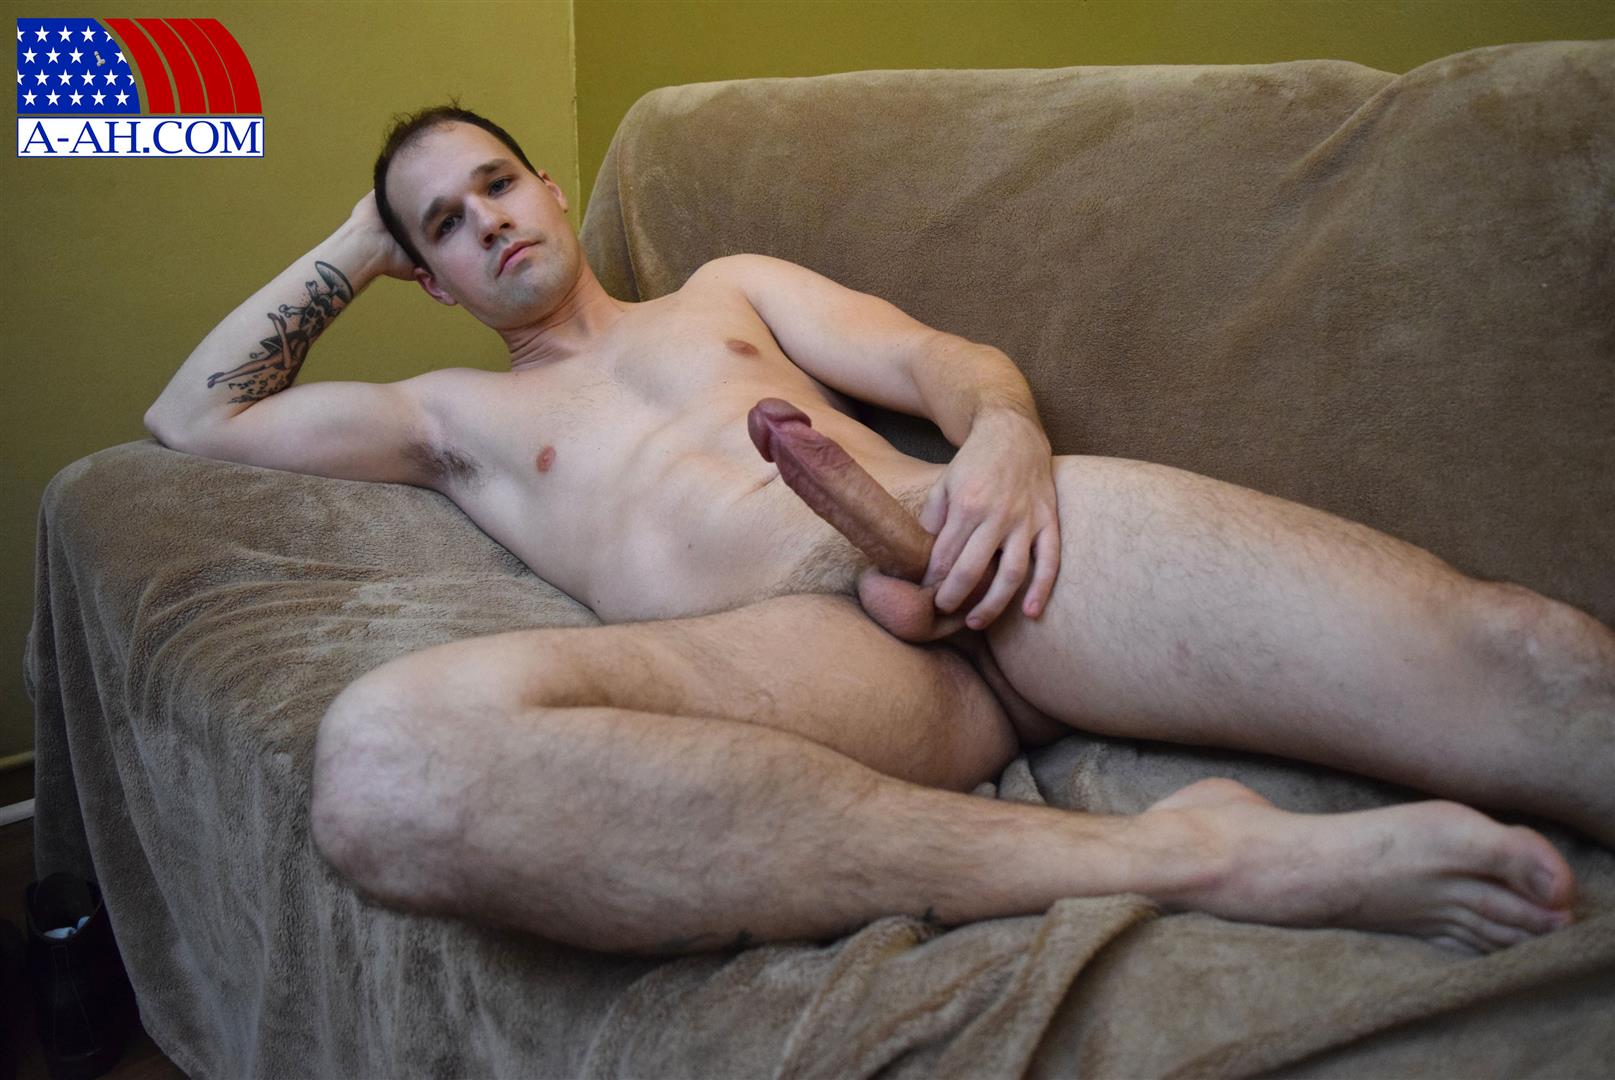 All American Heroes Navy Petty Officer Chris Big Uncut Cock Amateur Gay Porn 10 US Navy Petty Officer Stroking His Big Uncut Cock